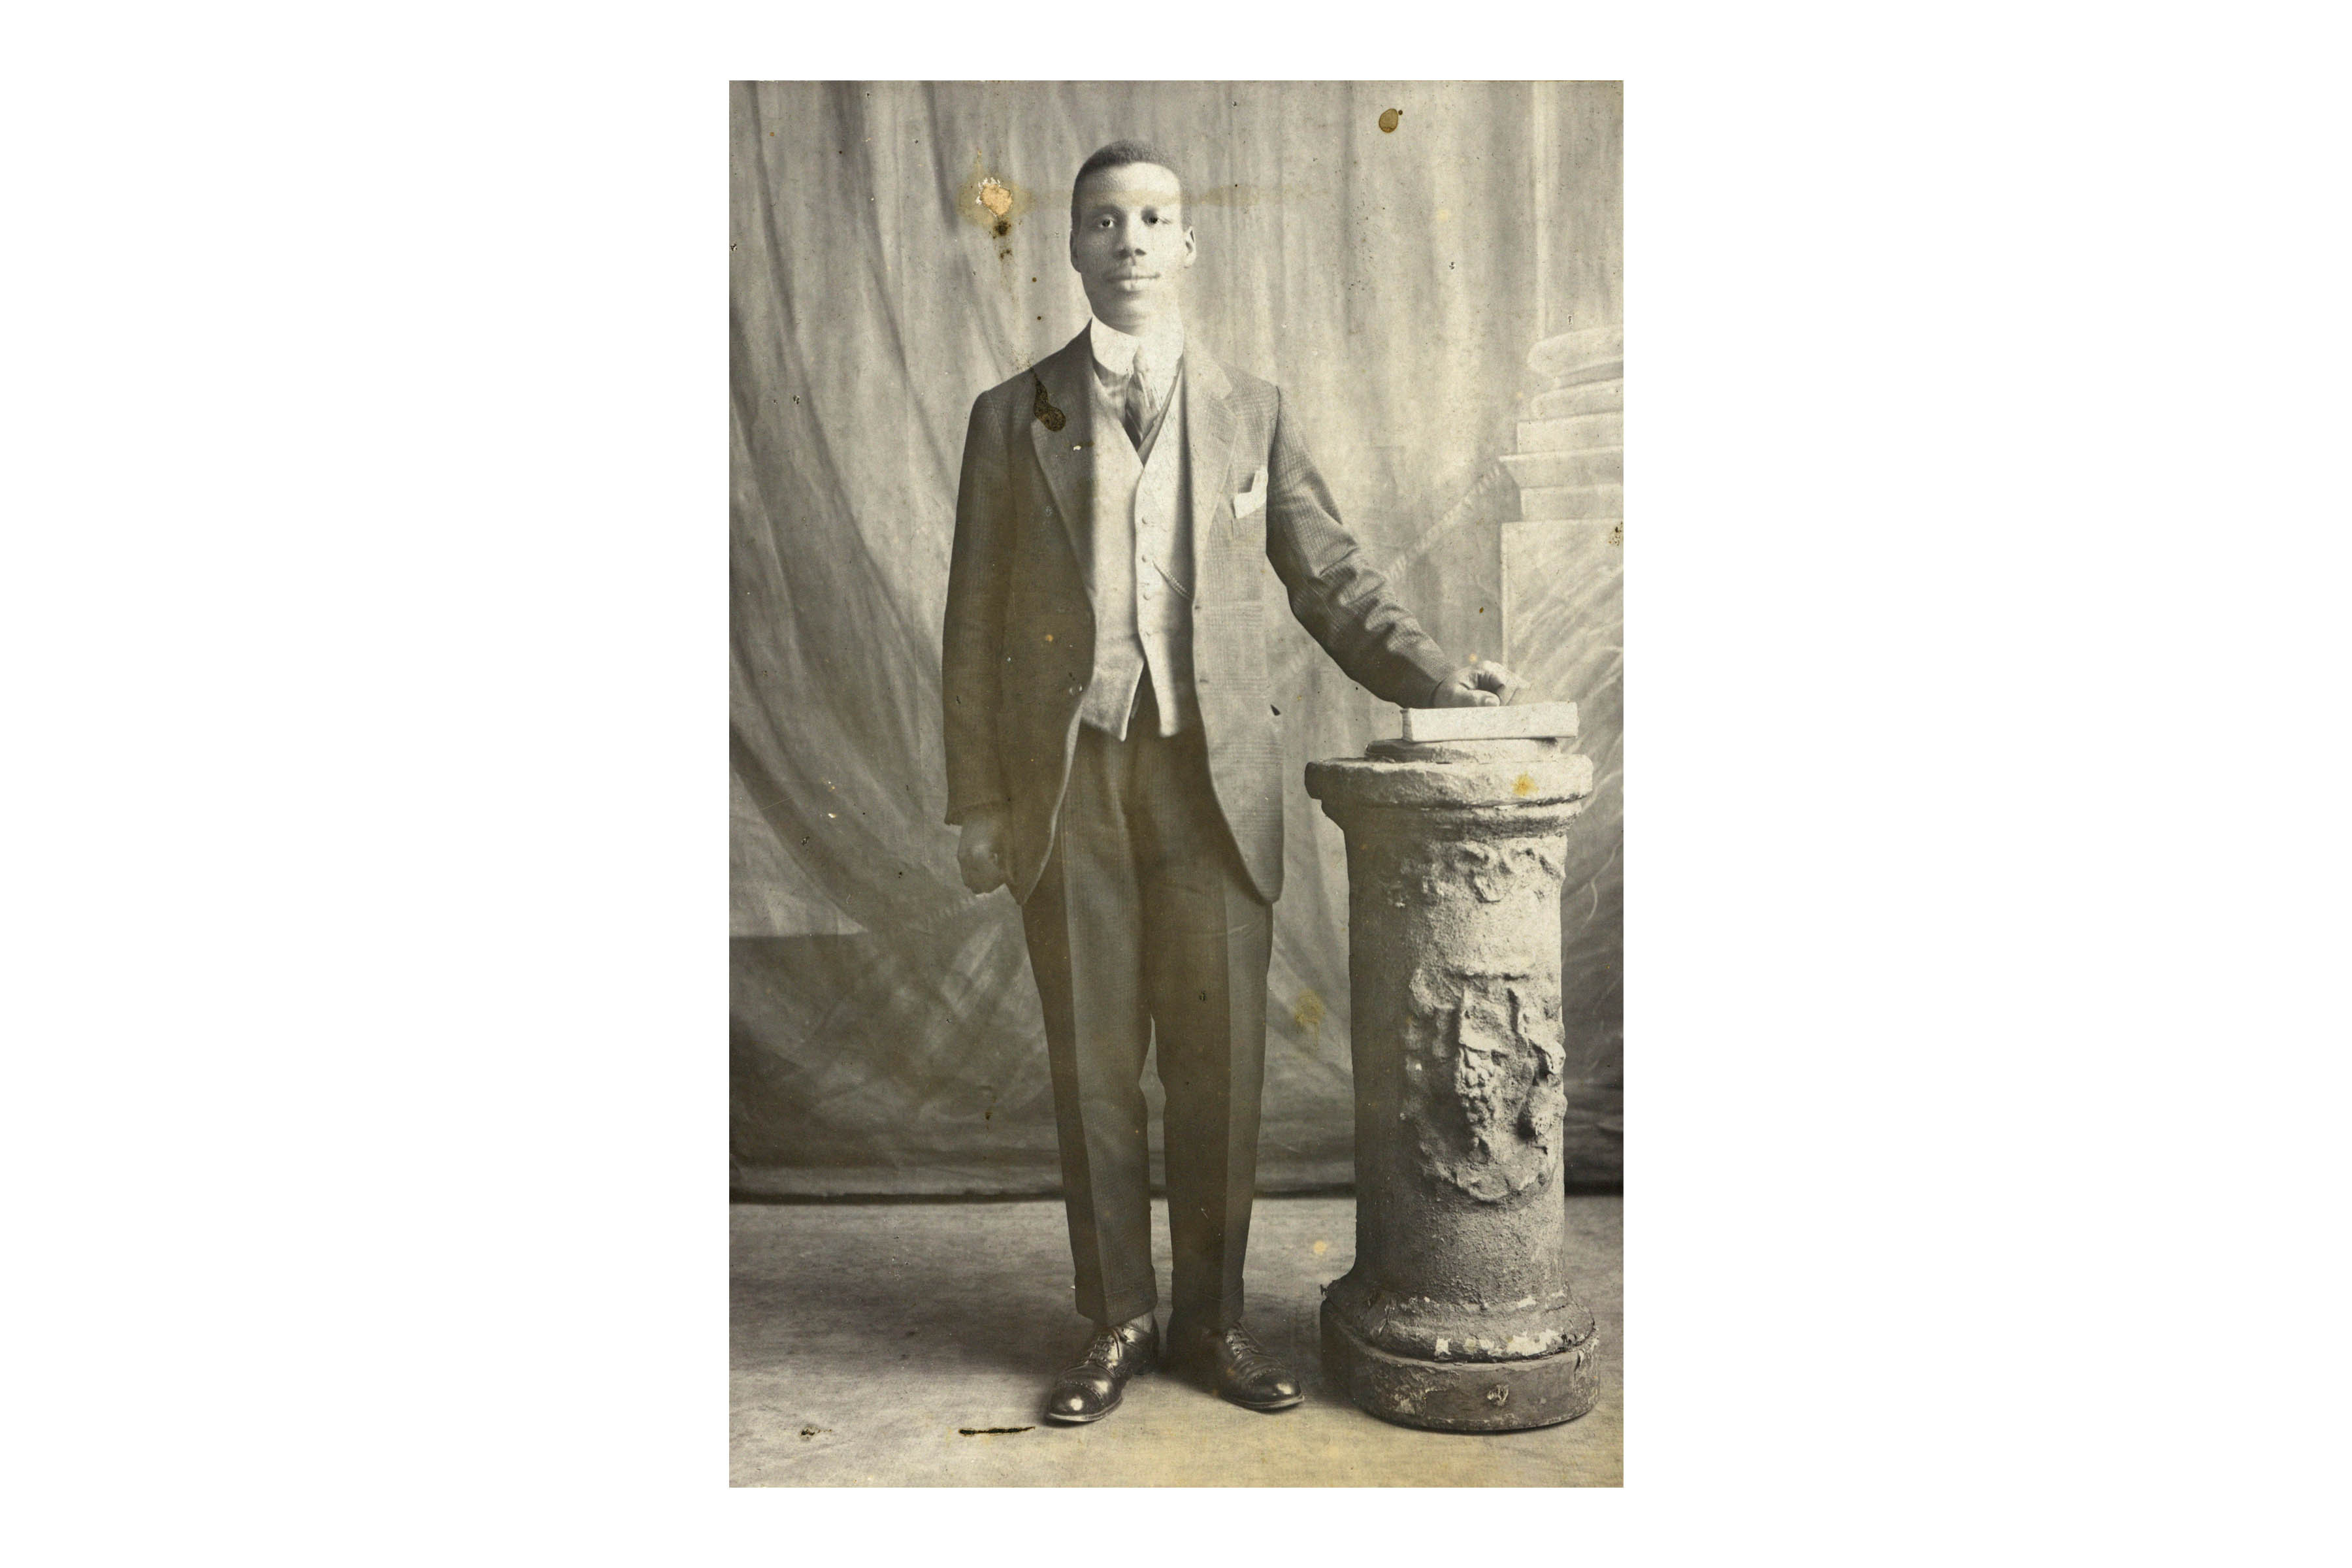 AWG Champion poses in a studio portrait taken around 1925. (Photograph courtesy of UKZN Campbell Collection)